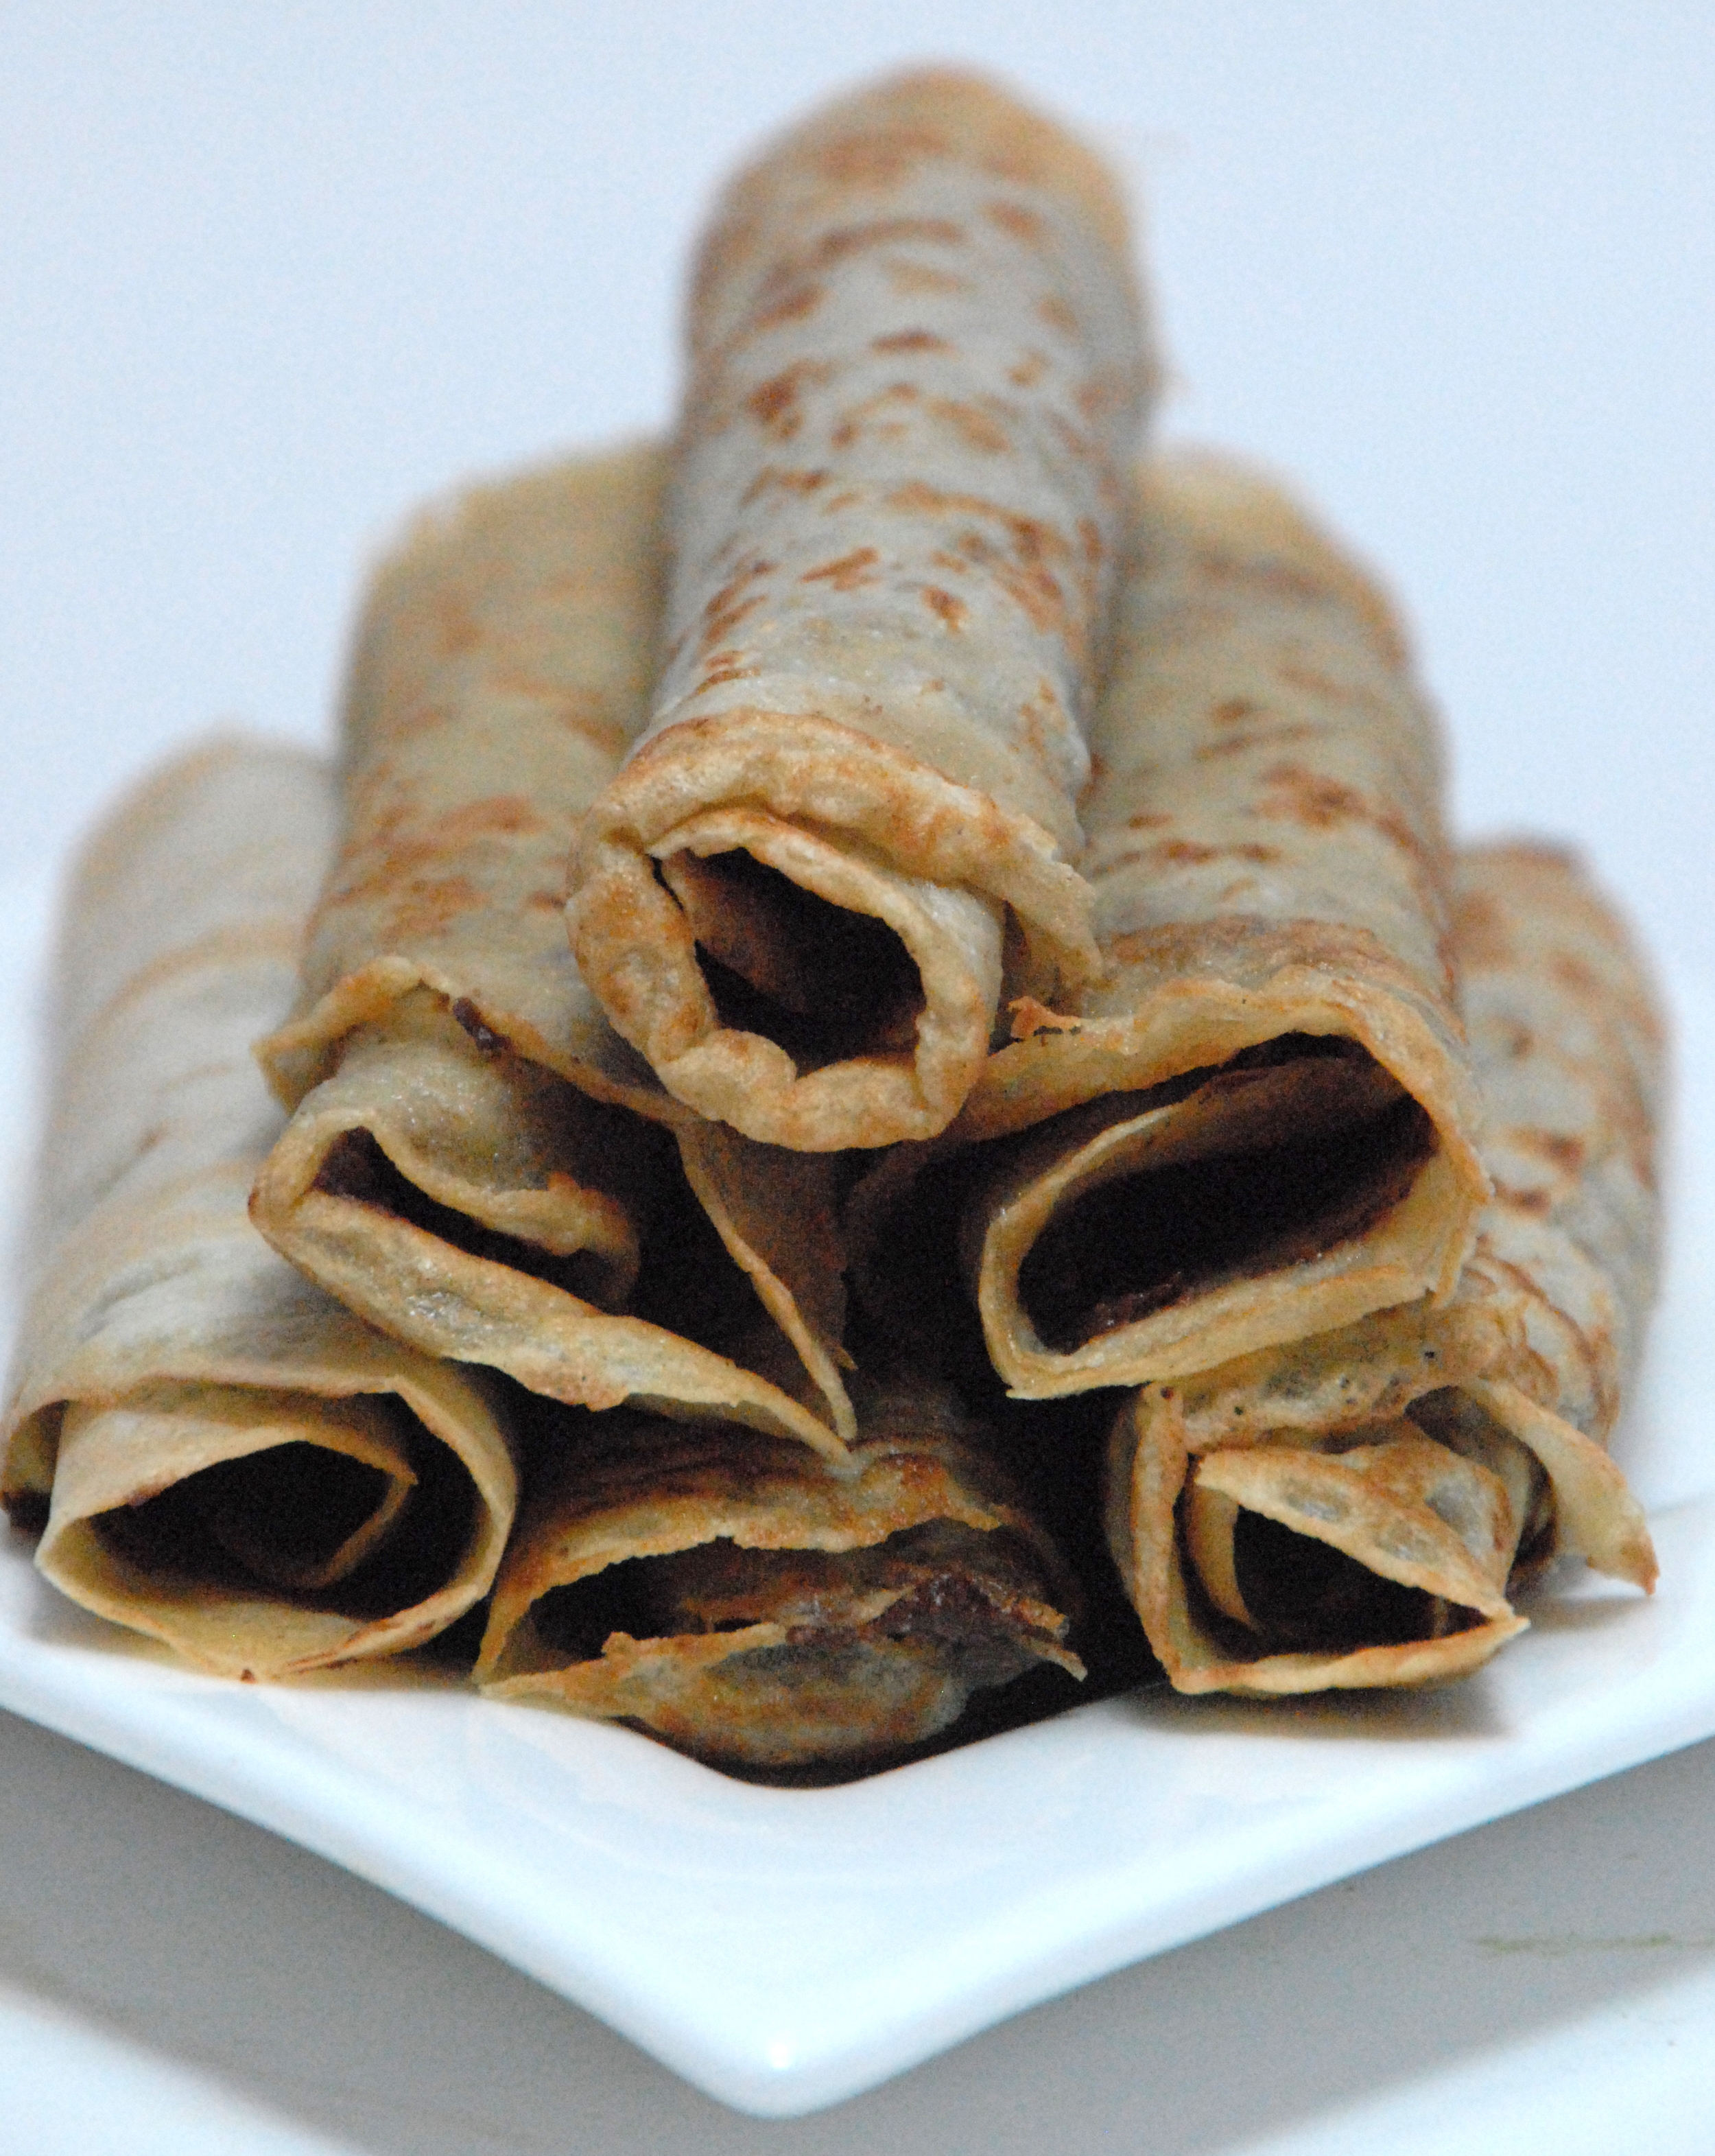 Forte chocolate spread filled crepes